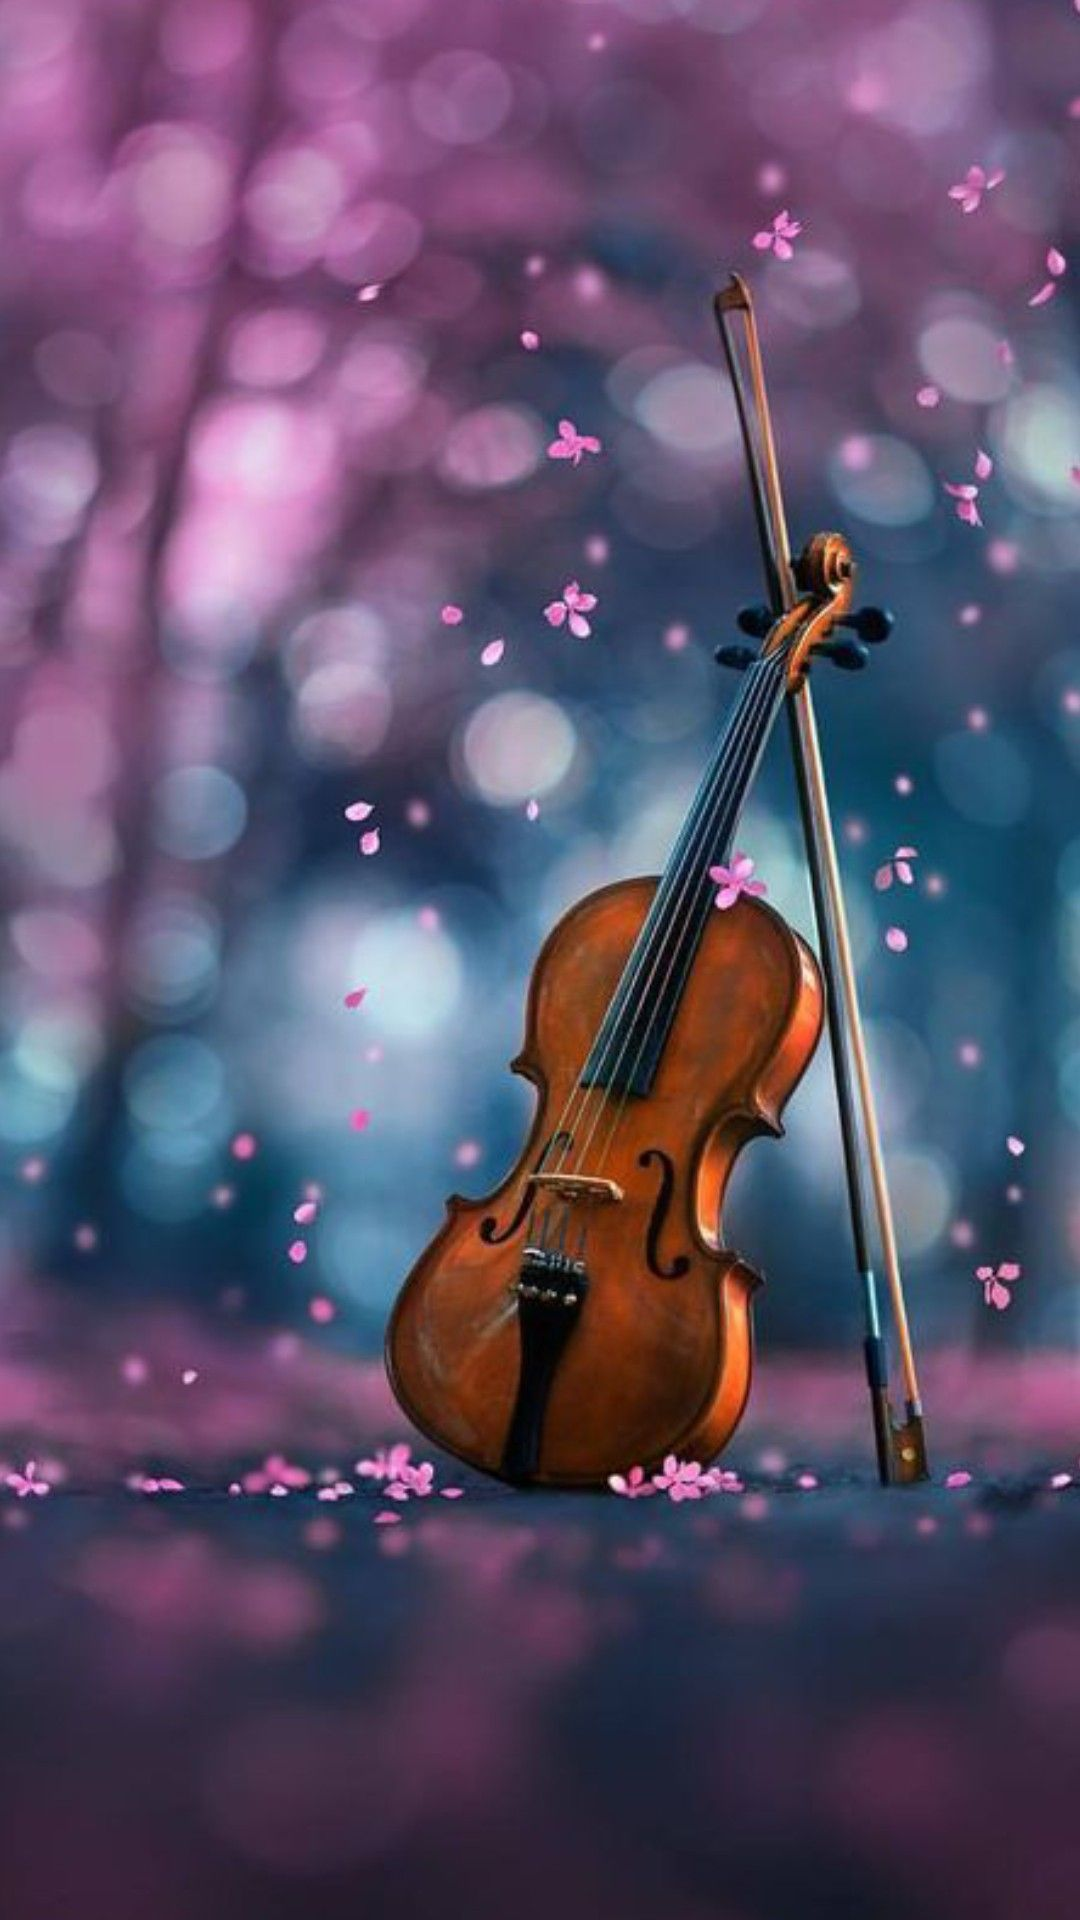 Wallpapers In 2020 Violin Art Cool Pictures For Wallpaper Violin Photography